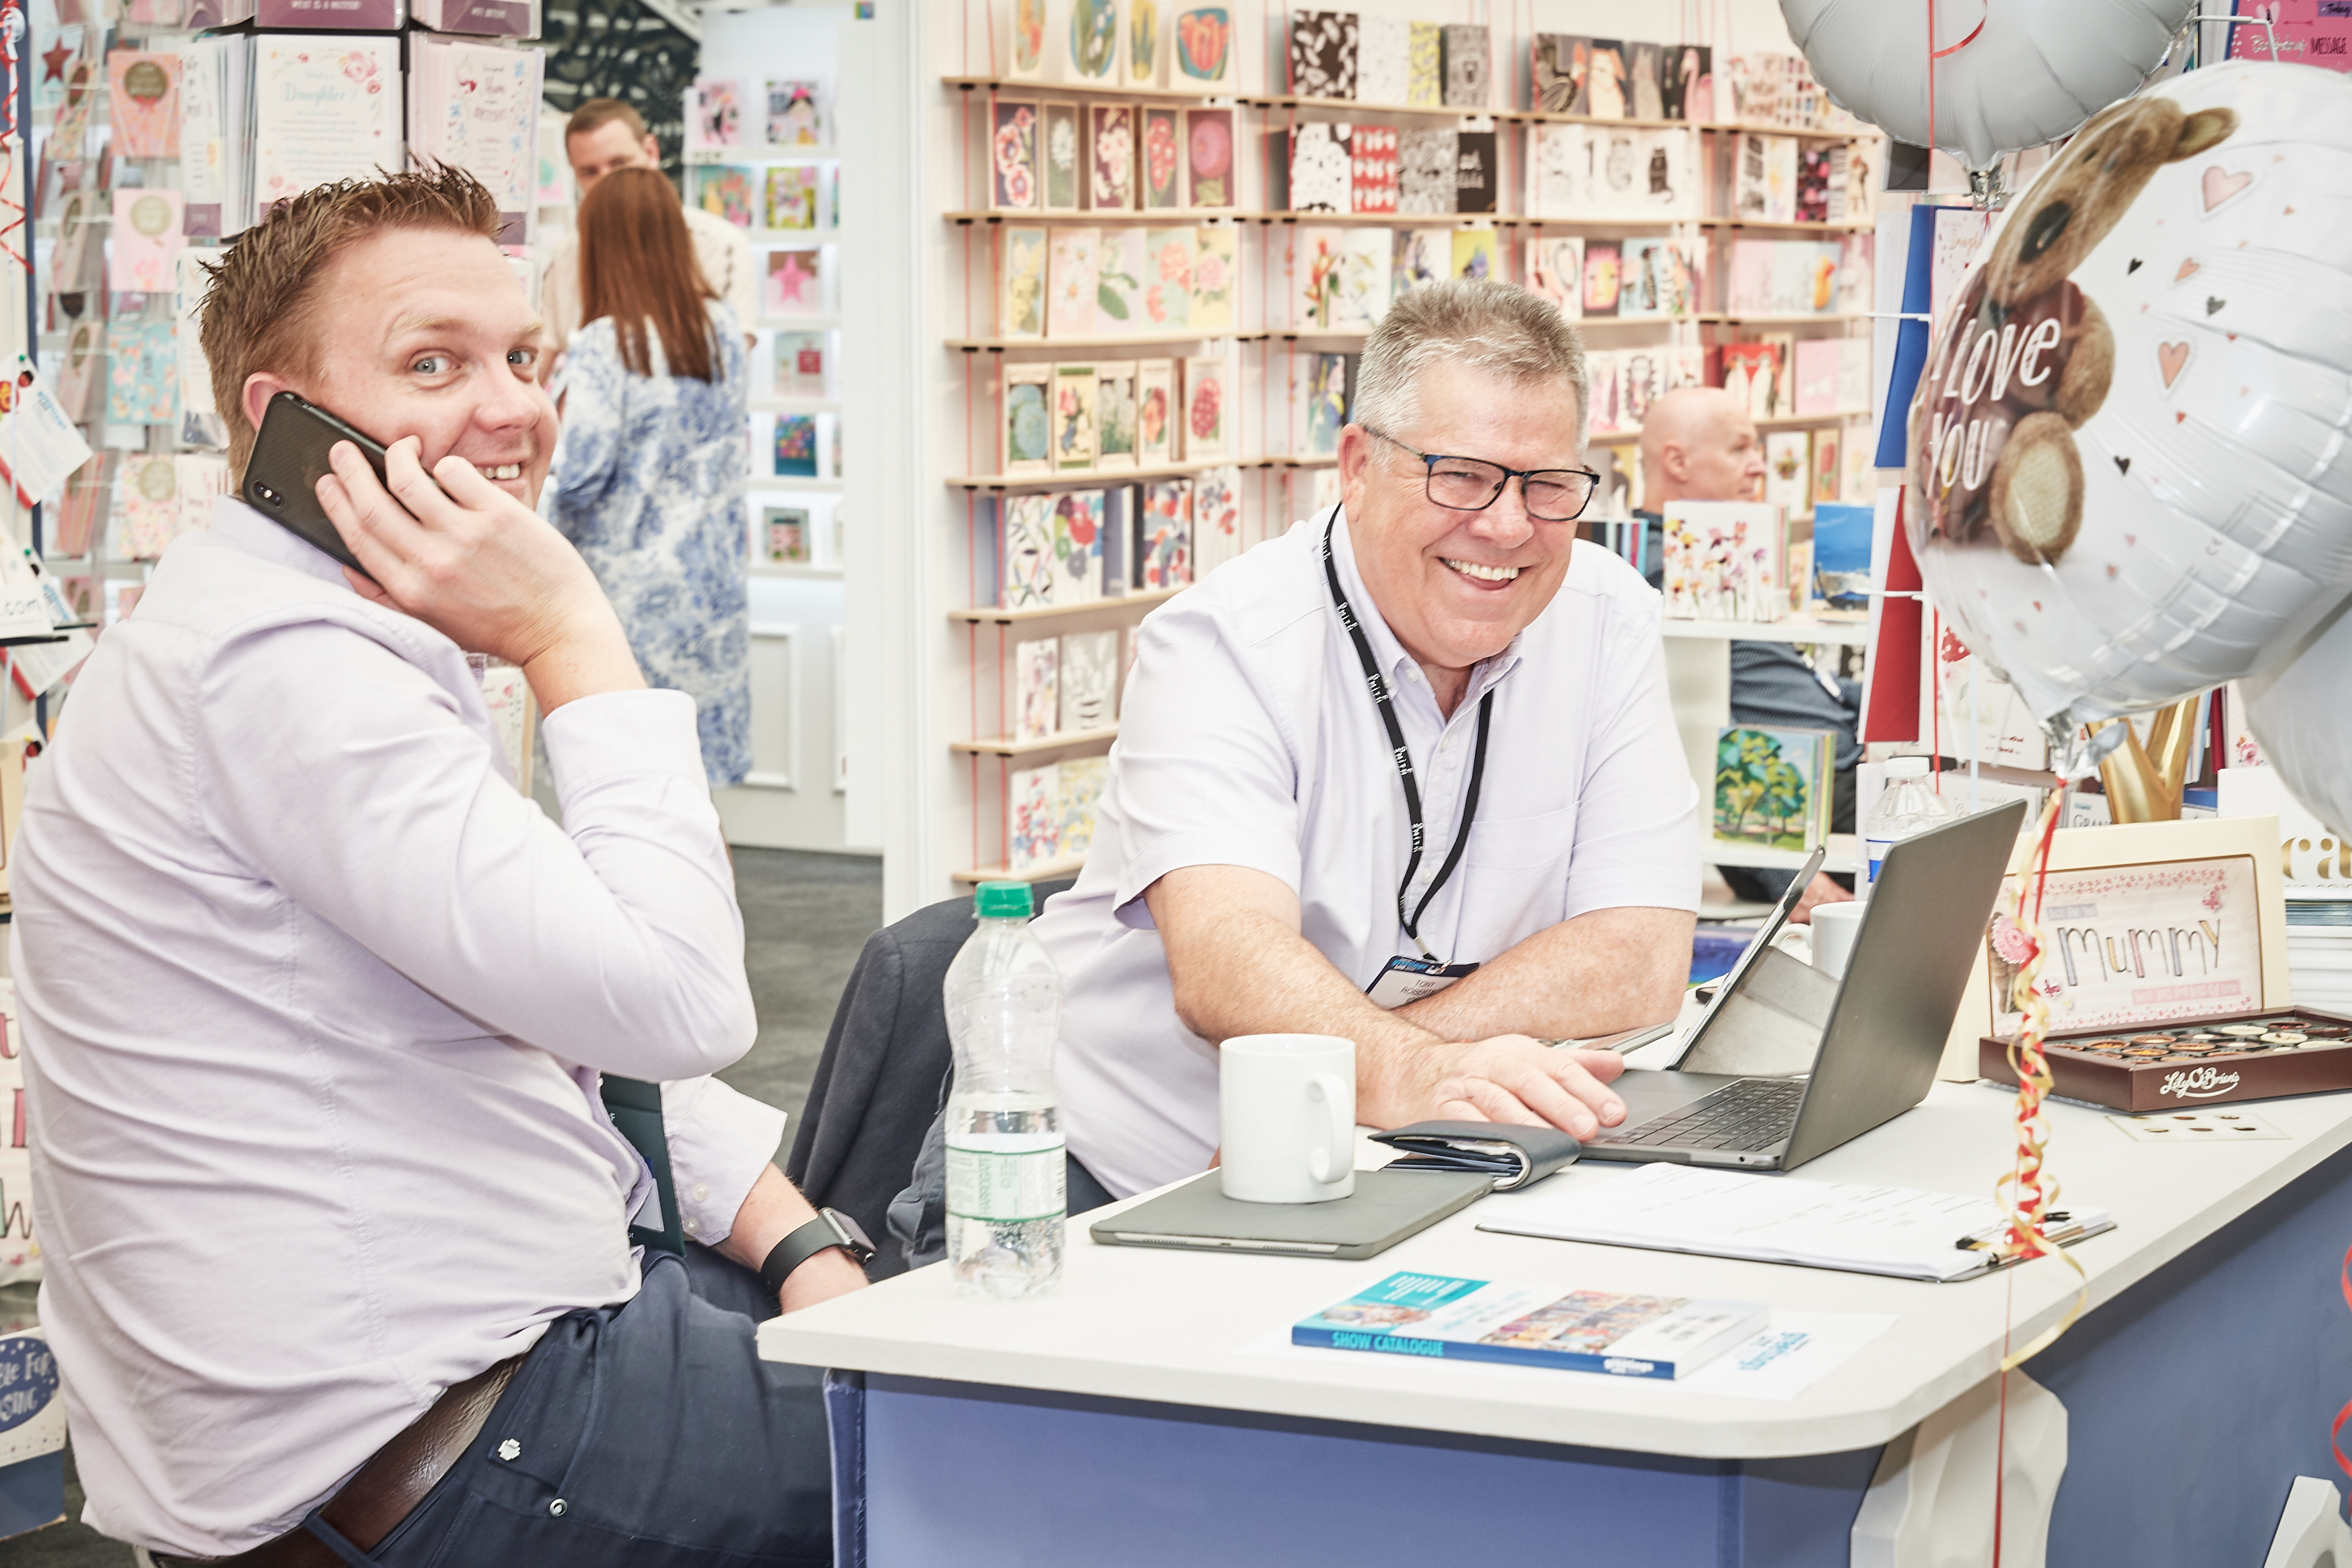 Above: IC&G's managing director Simon Wagstaff (left) with Tony on their stand at the last PG Live.